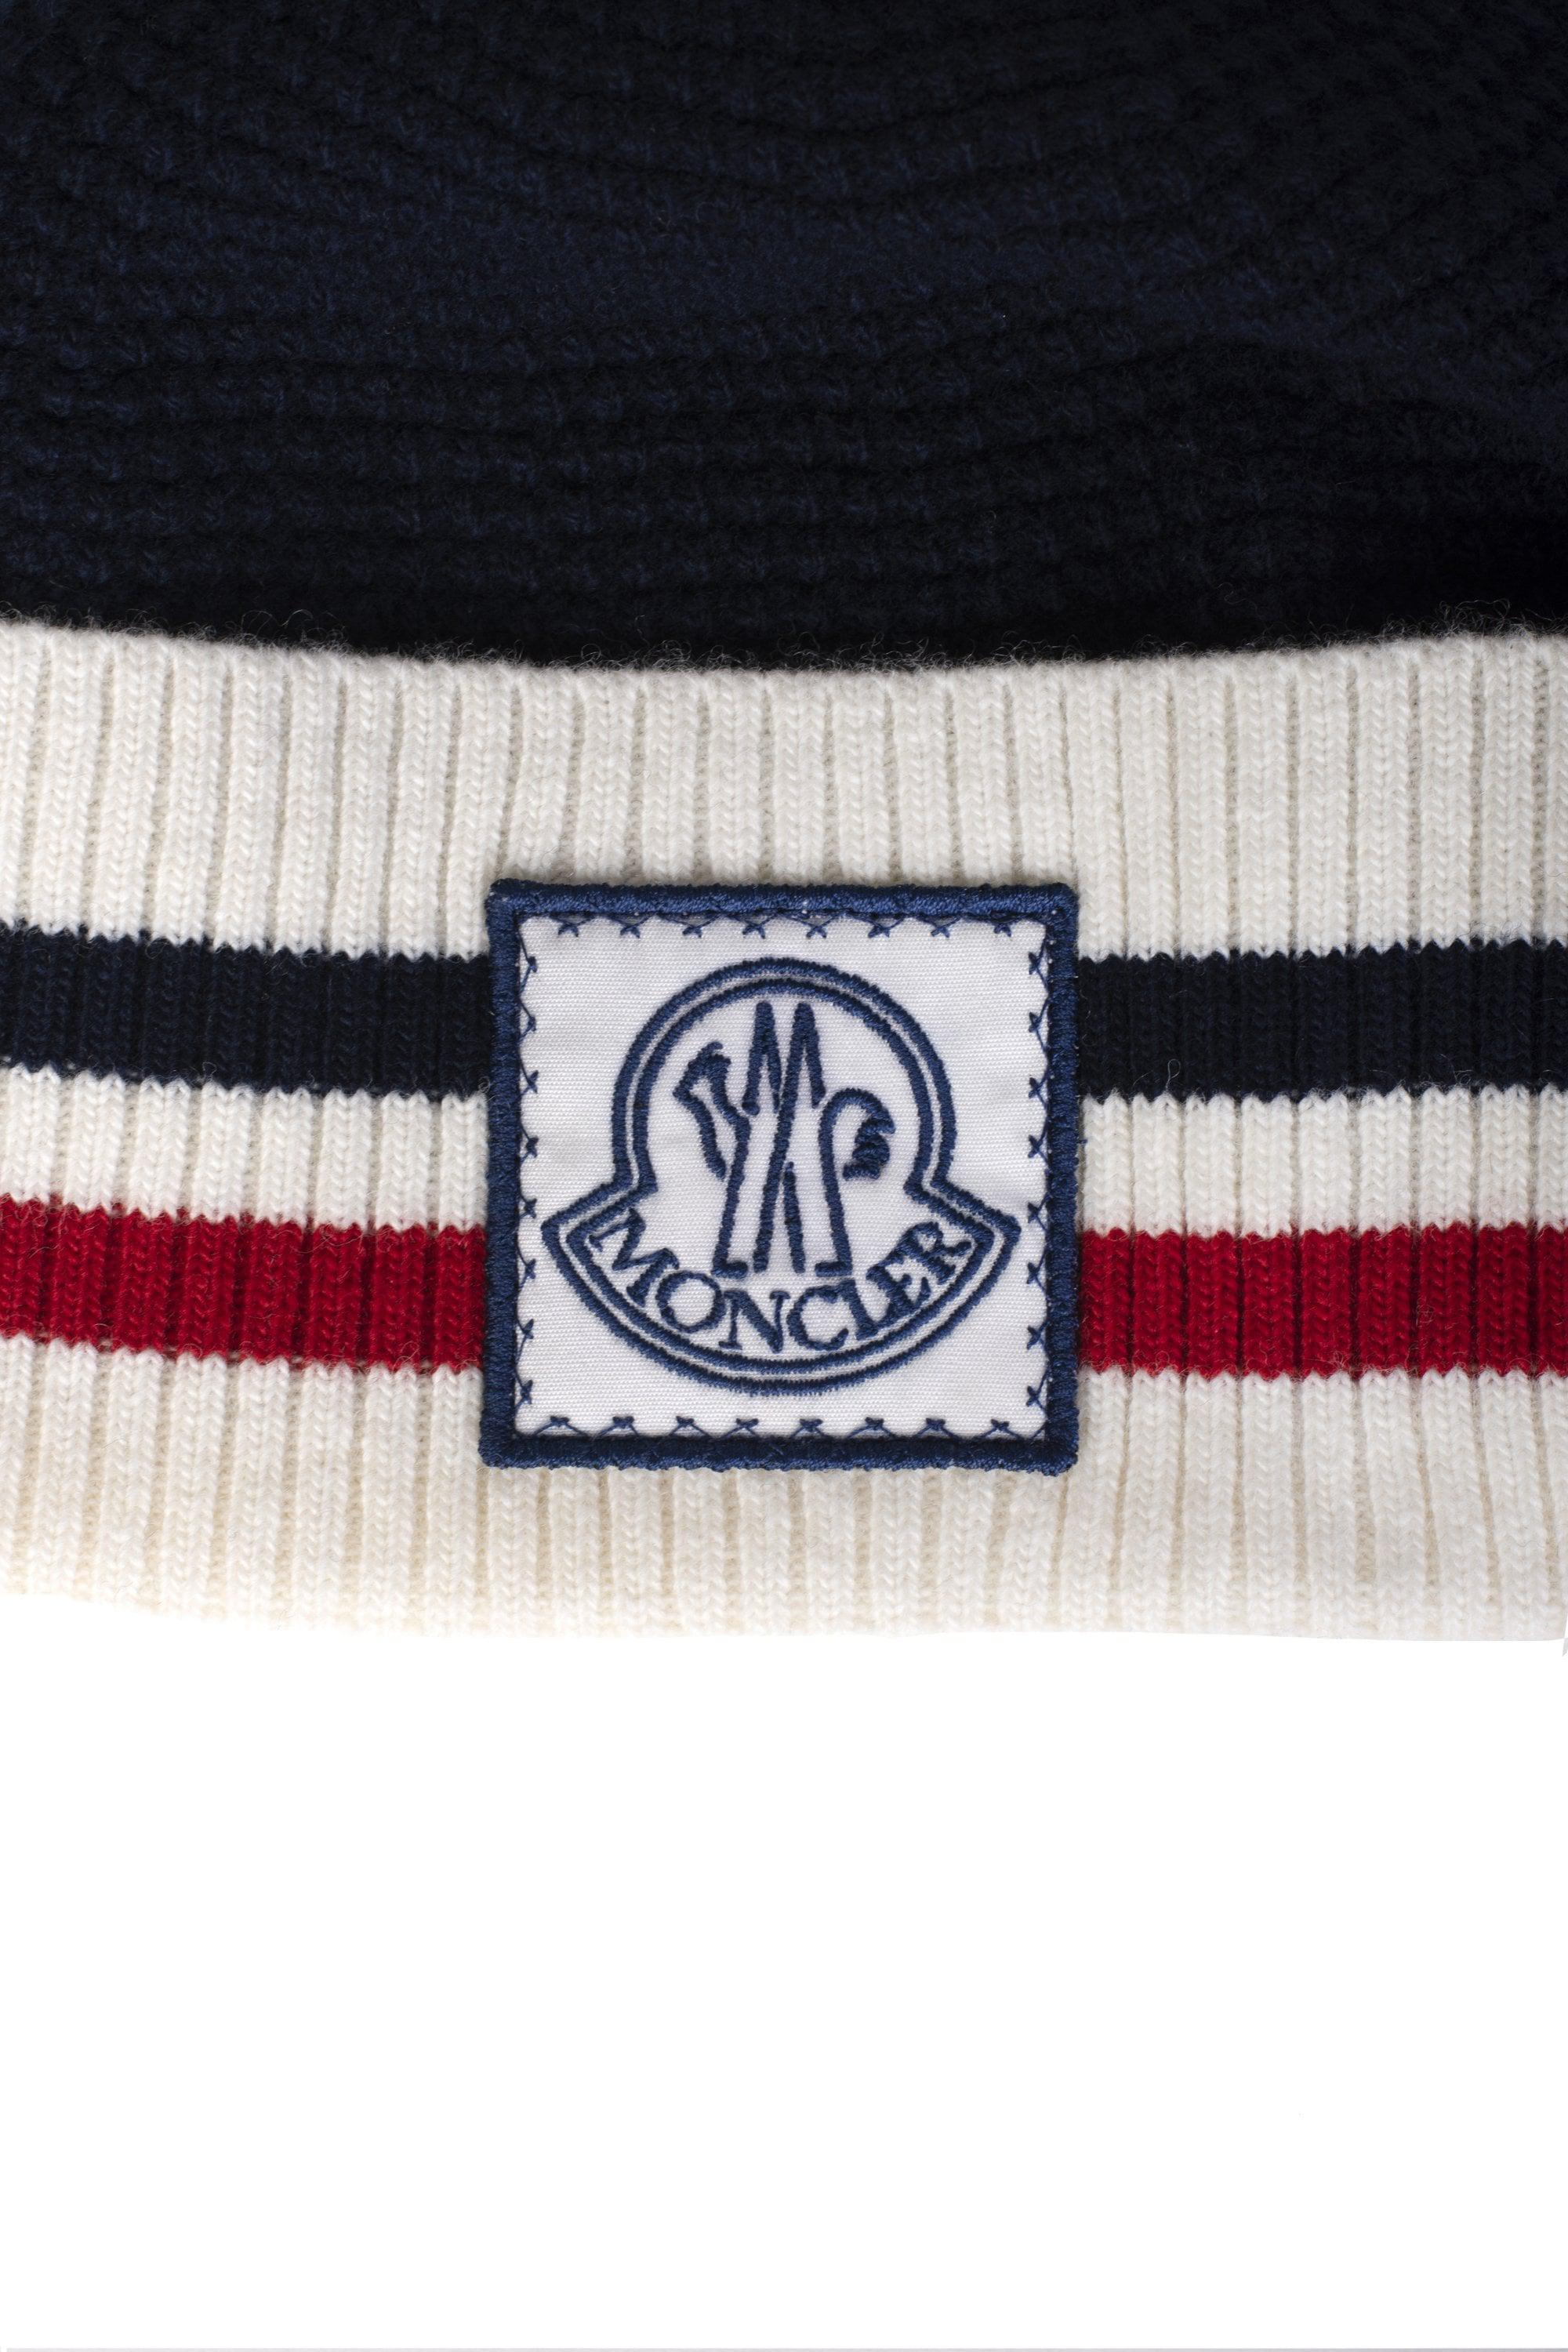 9096046be0b Moncler Gamme Bleu Contrast Trim Beanie Hat in Blue for Men - Lyst